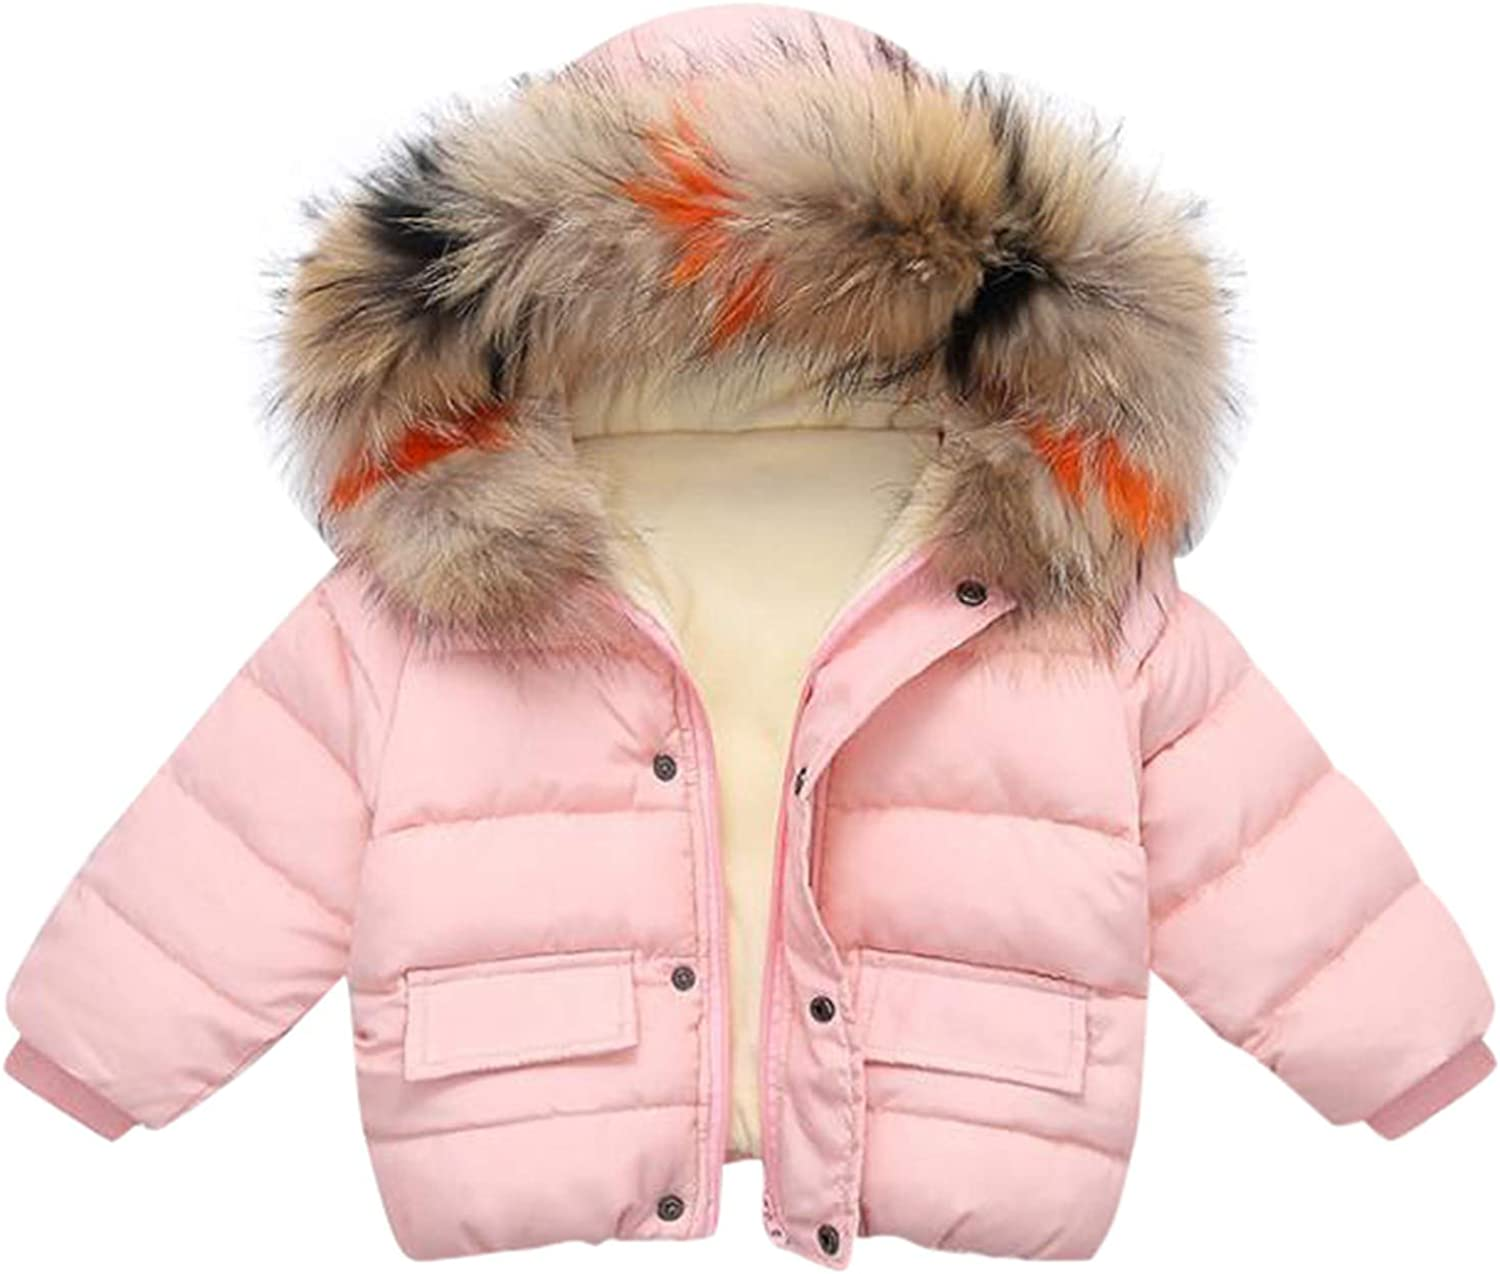 Winter Child Kids Solid Color Hoodie Zipper Coats Keep Warm Jacket Clothes Clothes for Boys and Girls Baby Coat